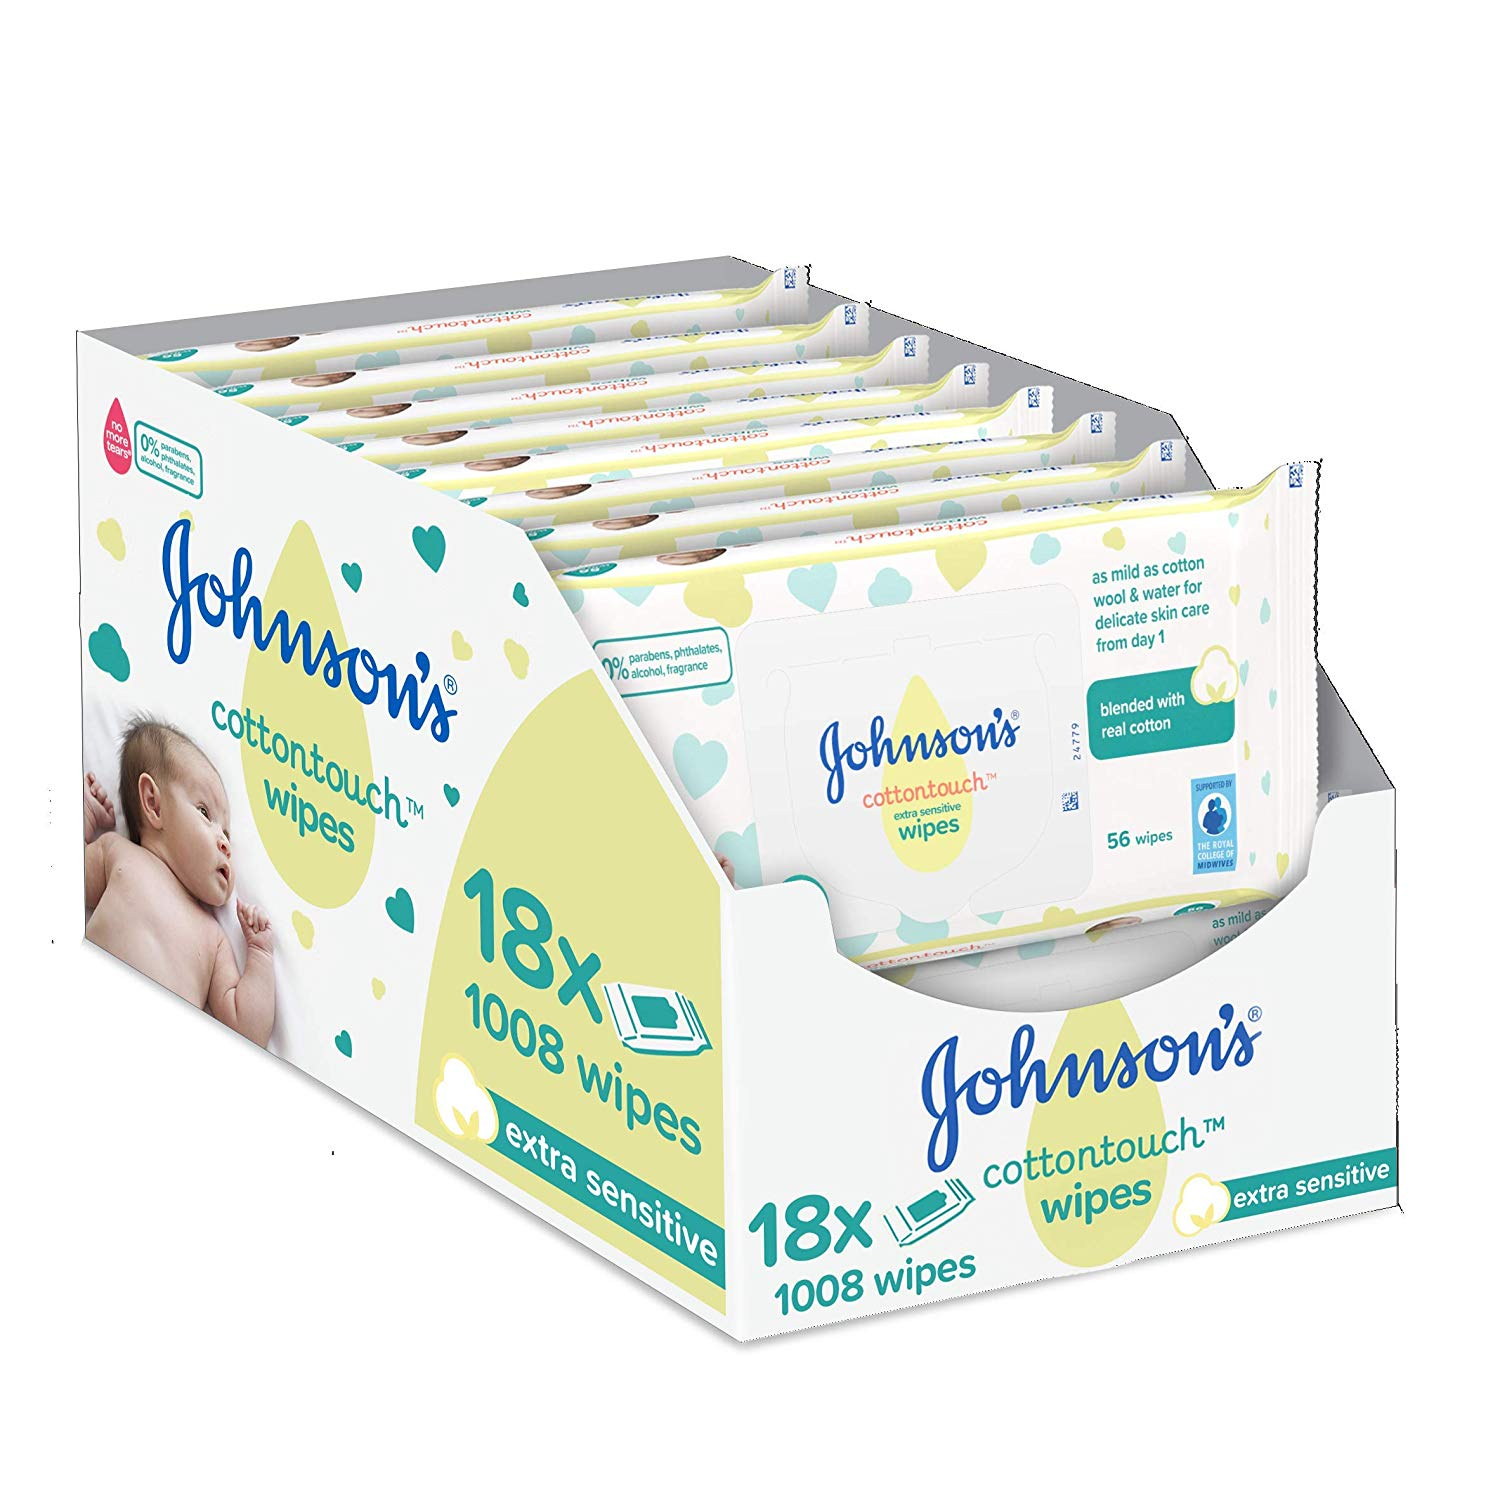 JOHNSON'S Cottontouch Extra Sensitive Wipes 1008 ct (56×18)